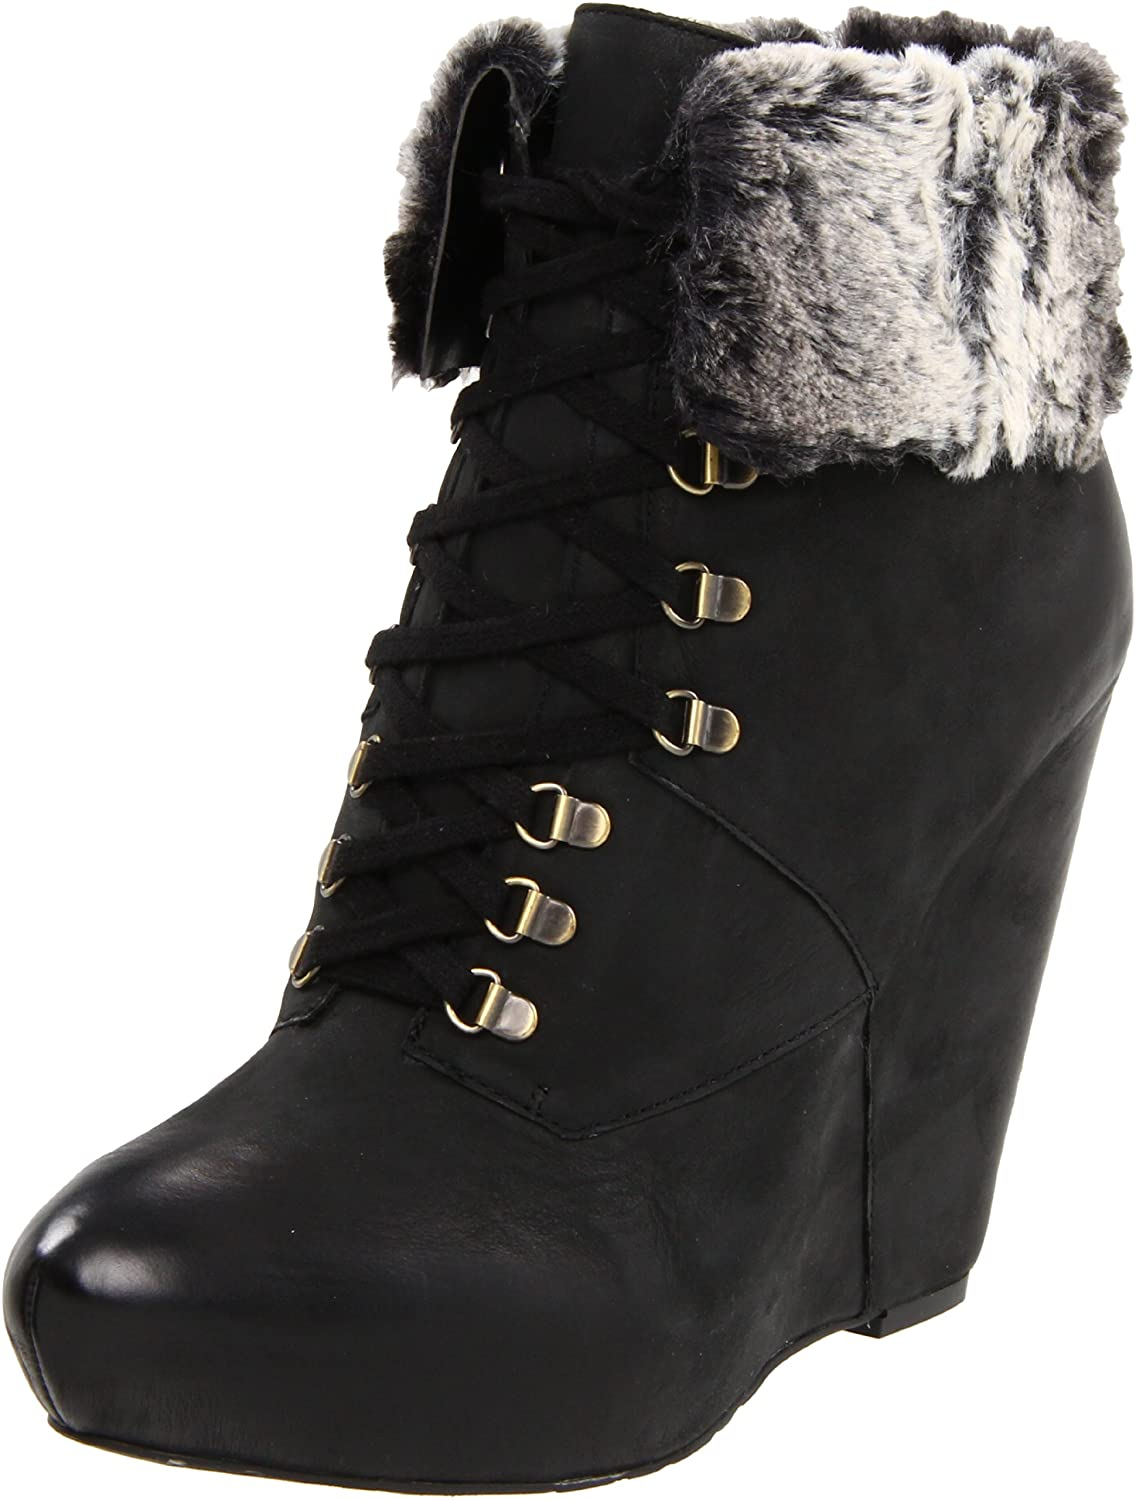 Boutique 9 Women's Daphnea Bootie